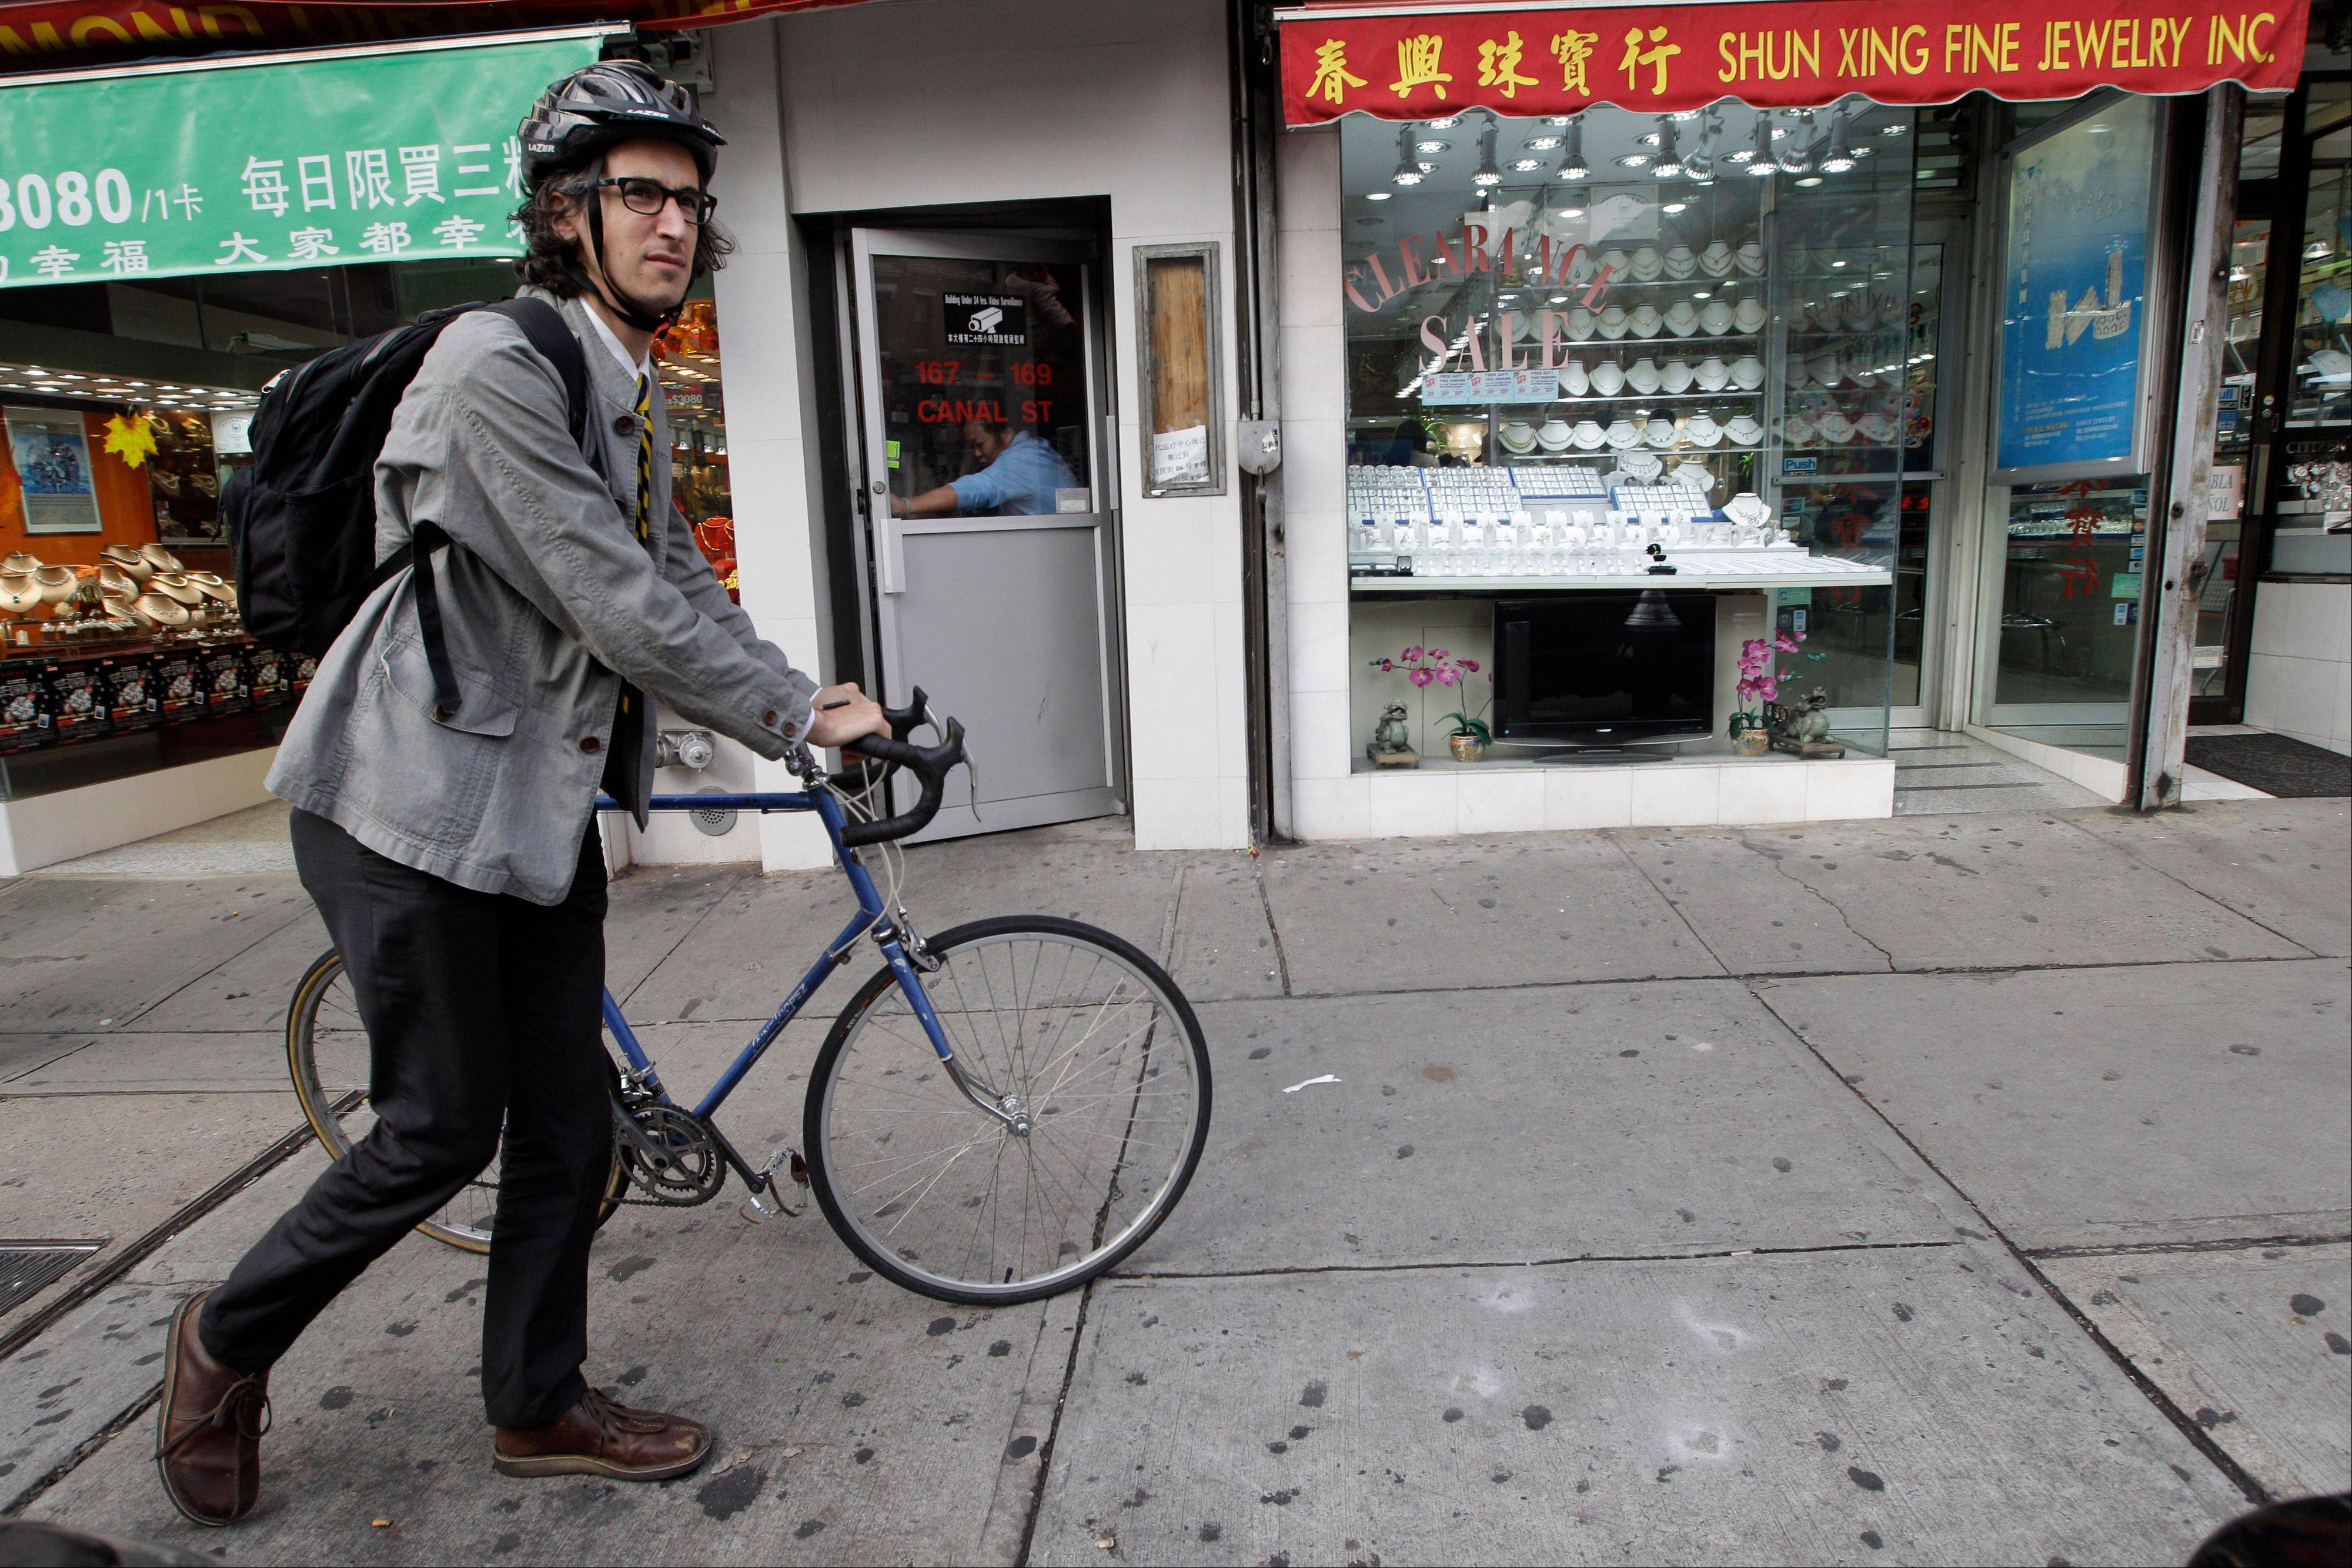 Dan Rollman, co-founder of a movement called the Sabbath Manifesto, walks his bicycle on Canal Street in New York. The Manifesto is a call to unplug one day a week to find solitude or to simply take a day of rest with family and friends.